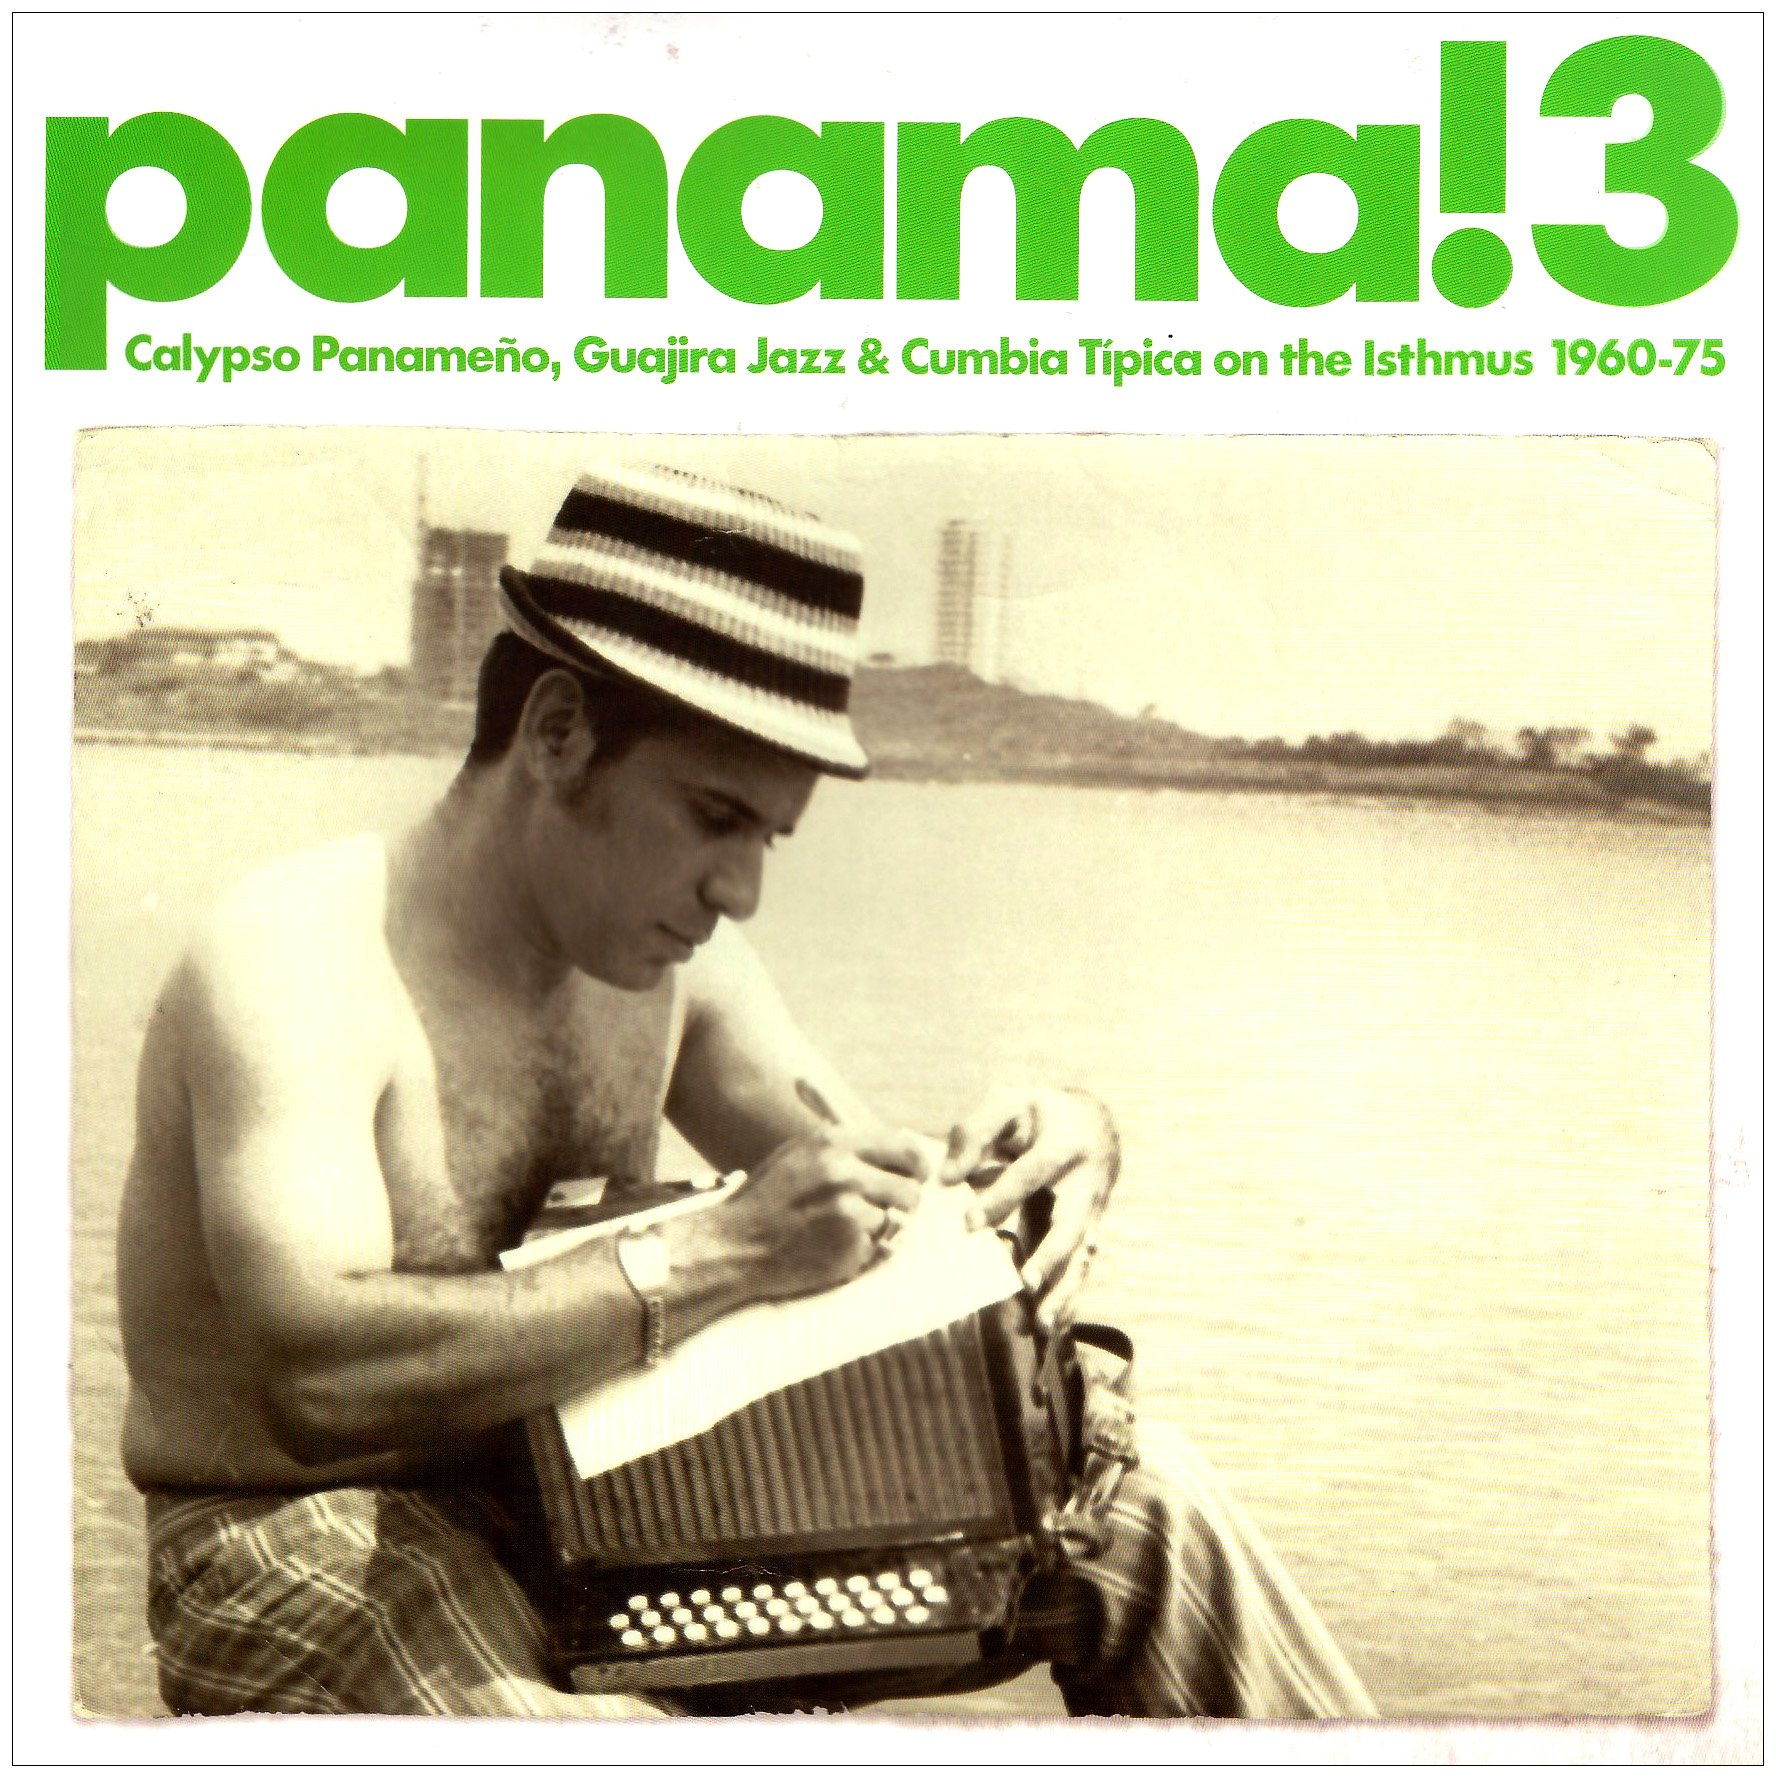 Panama! 3: Calypso Panameno, Guajira Jazz and Cumbia Tipica on Theisthmus 1960-1975 [Vinyl]